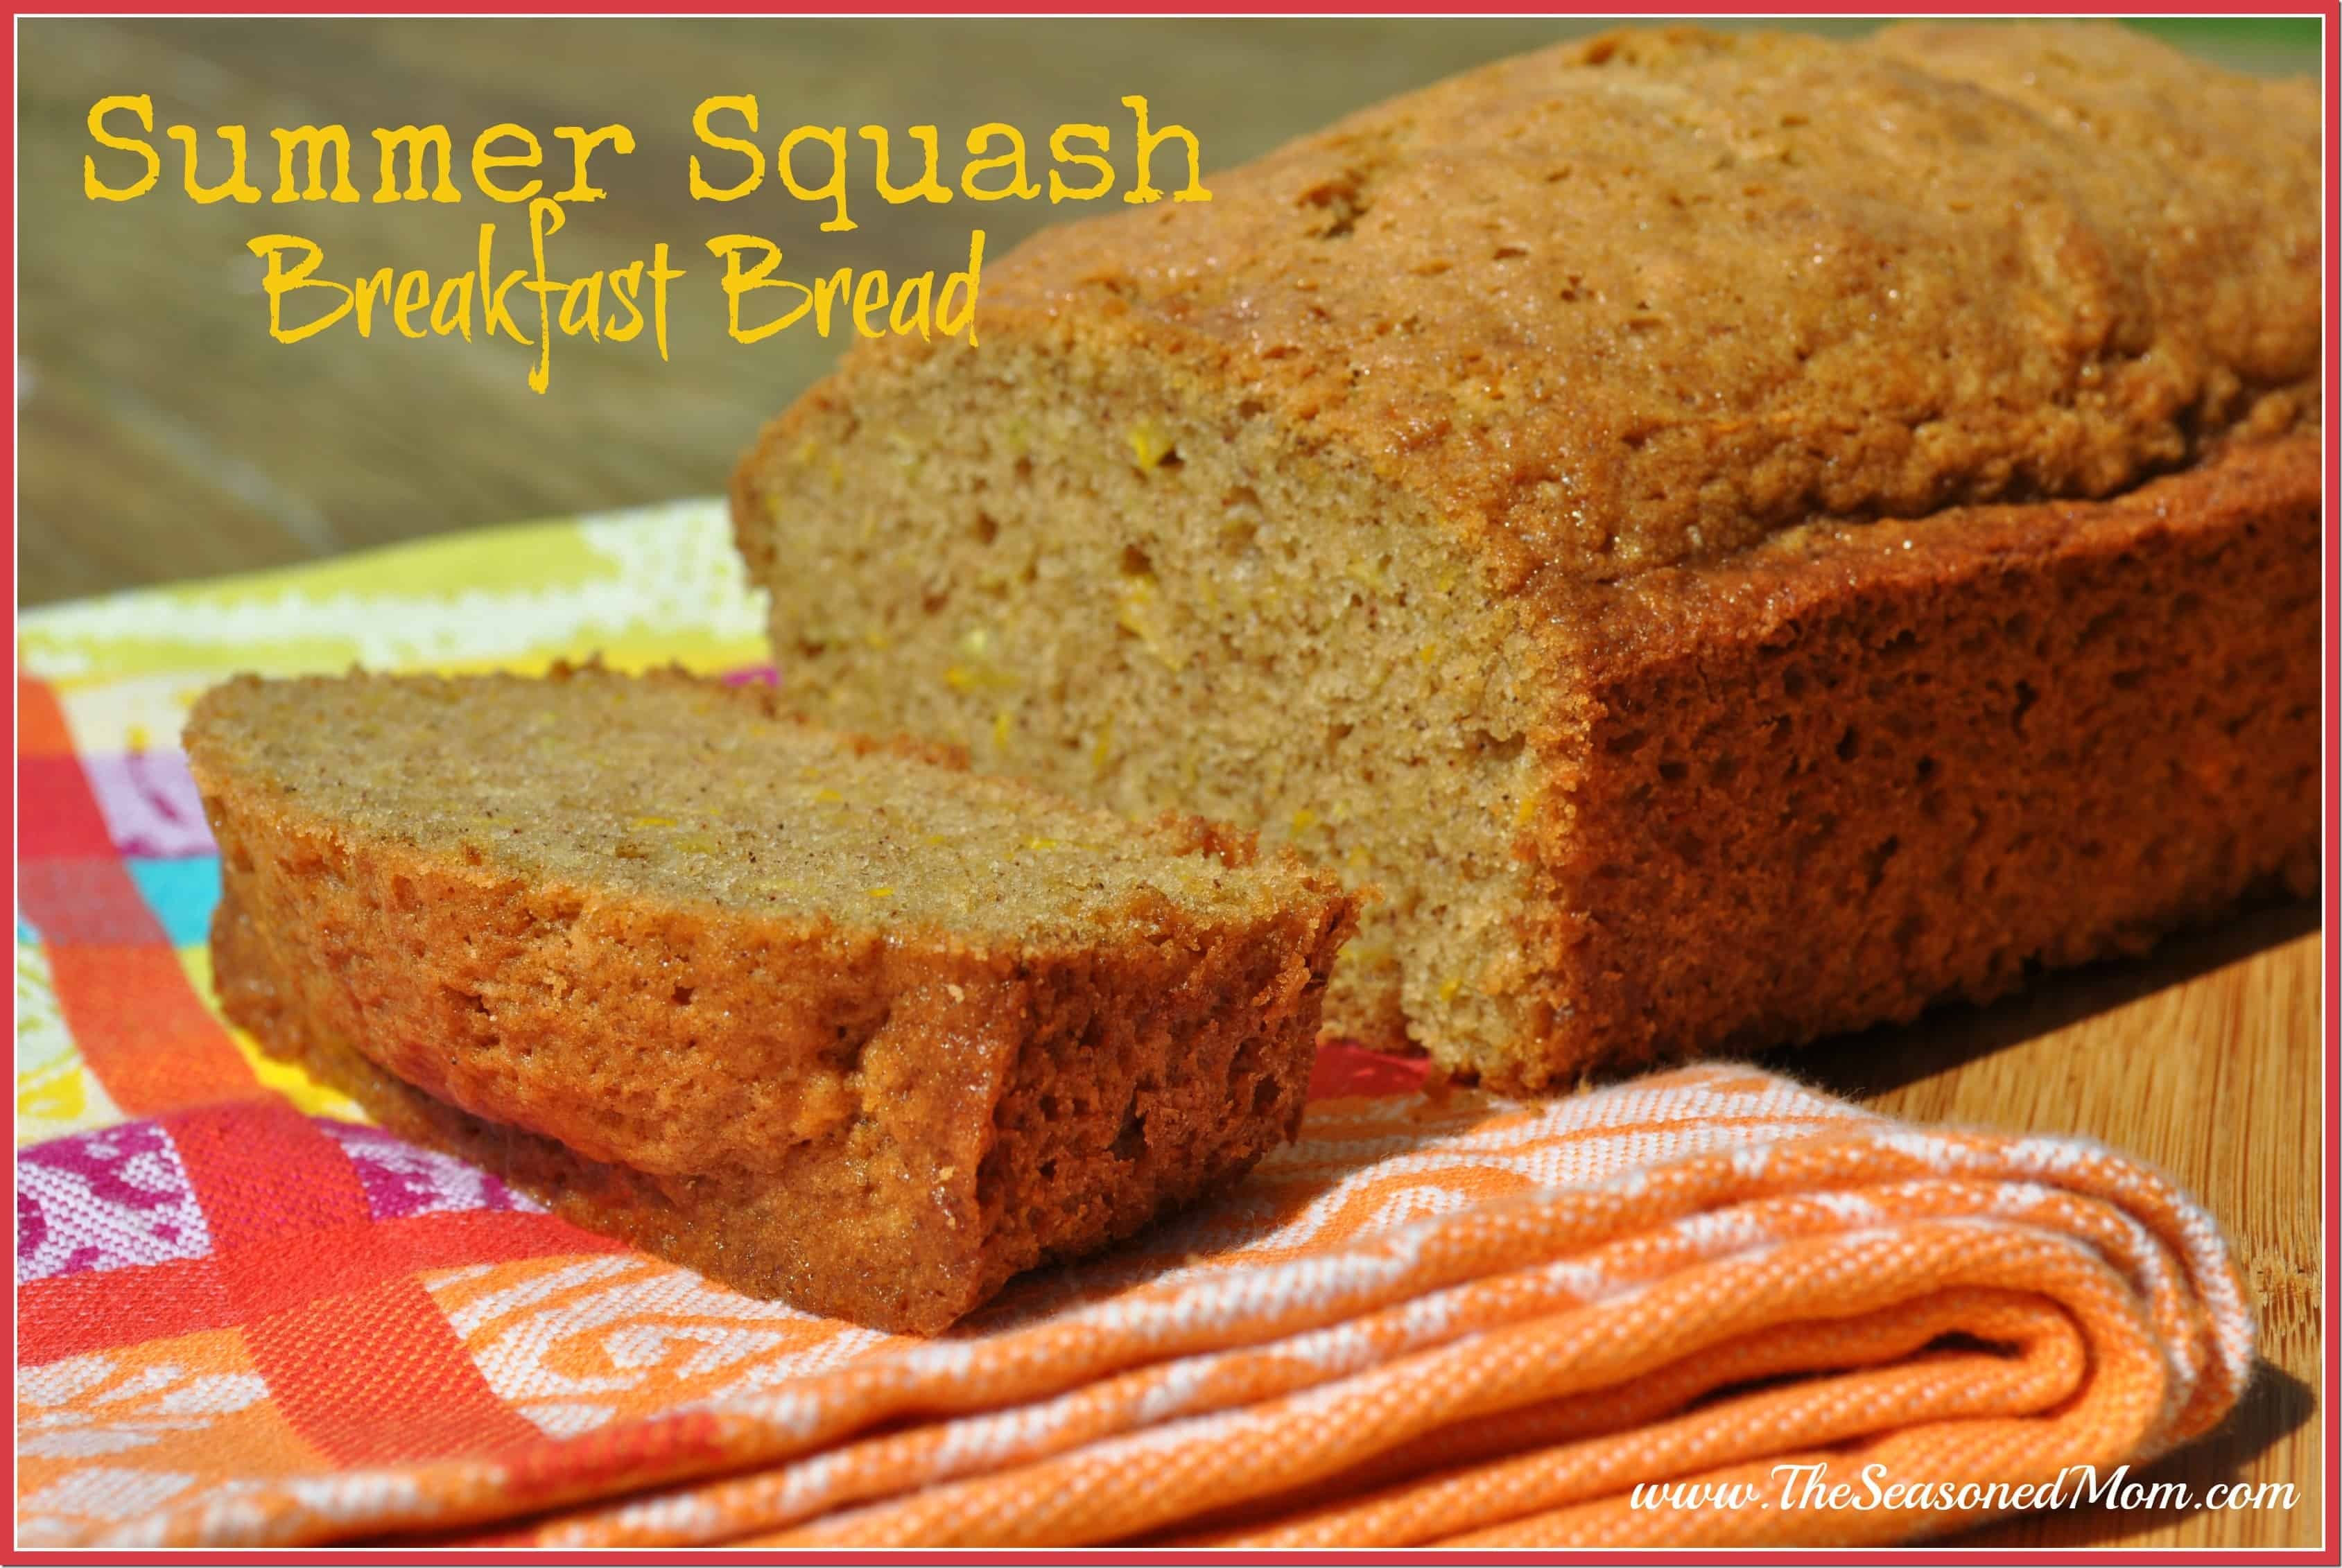 Summer squash breakfast bread the seasoned mom forumfinder Image collections